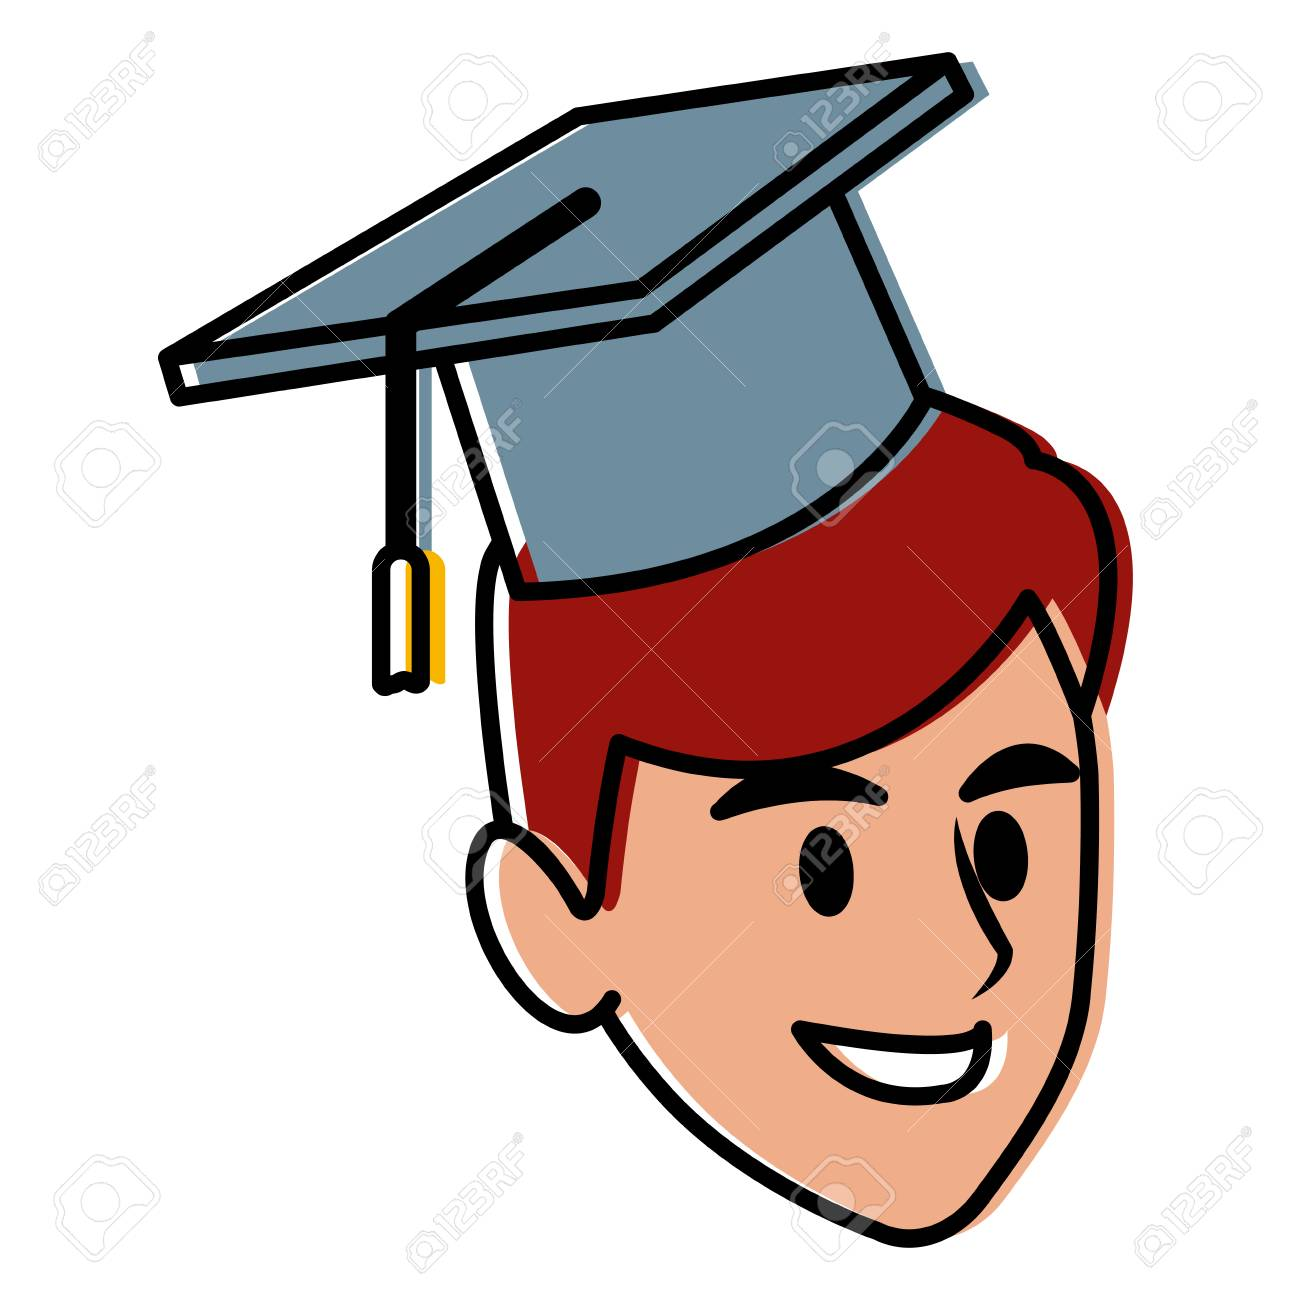 student man with graduation hat icon vector illustration graphic